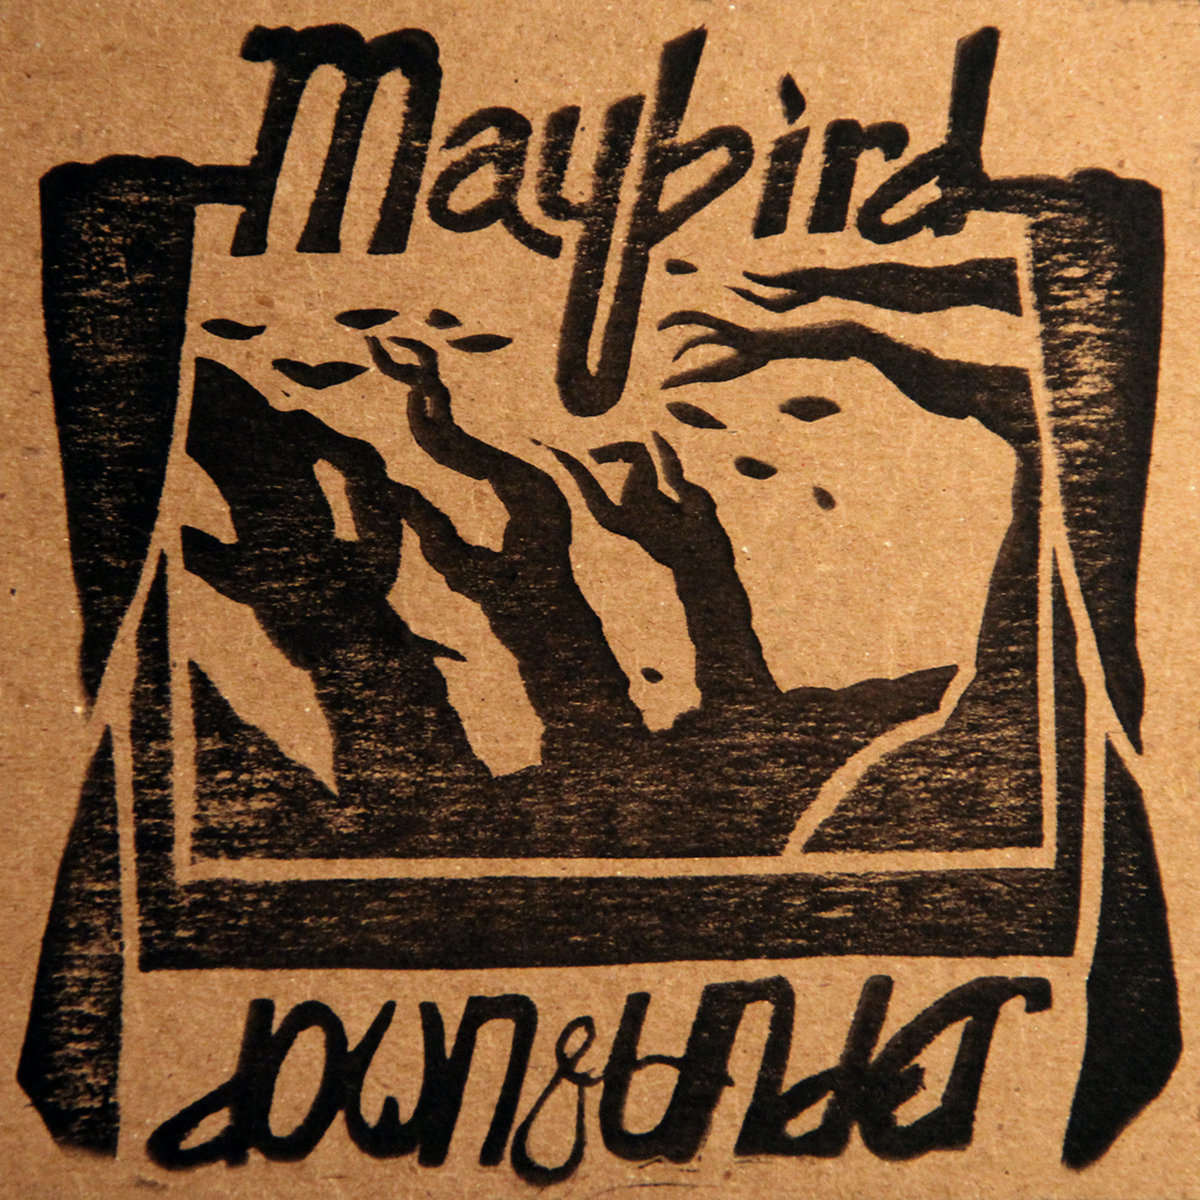 maybird down and under